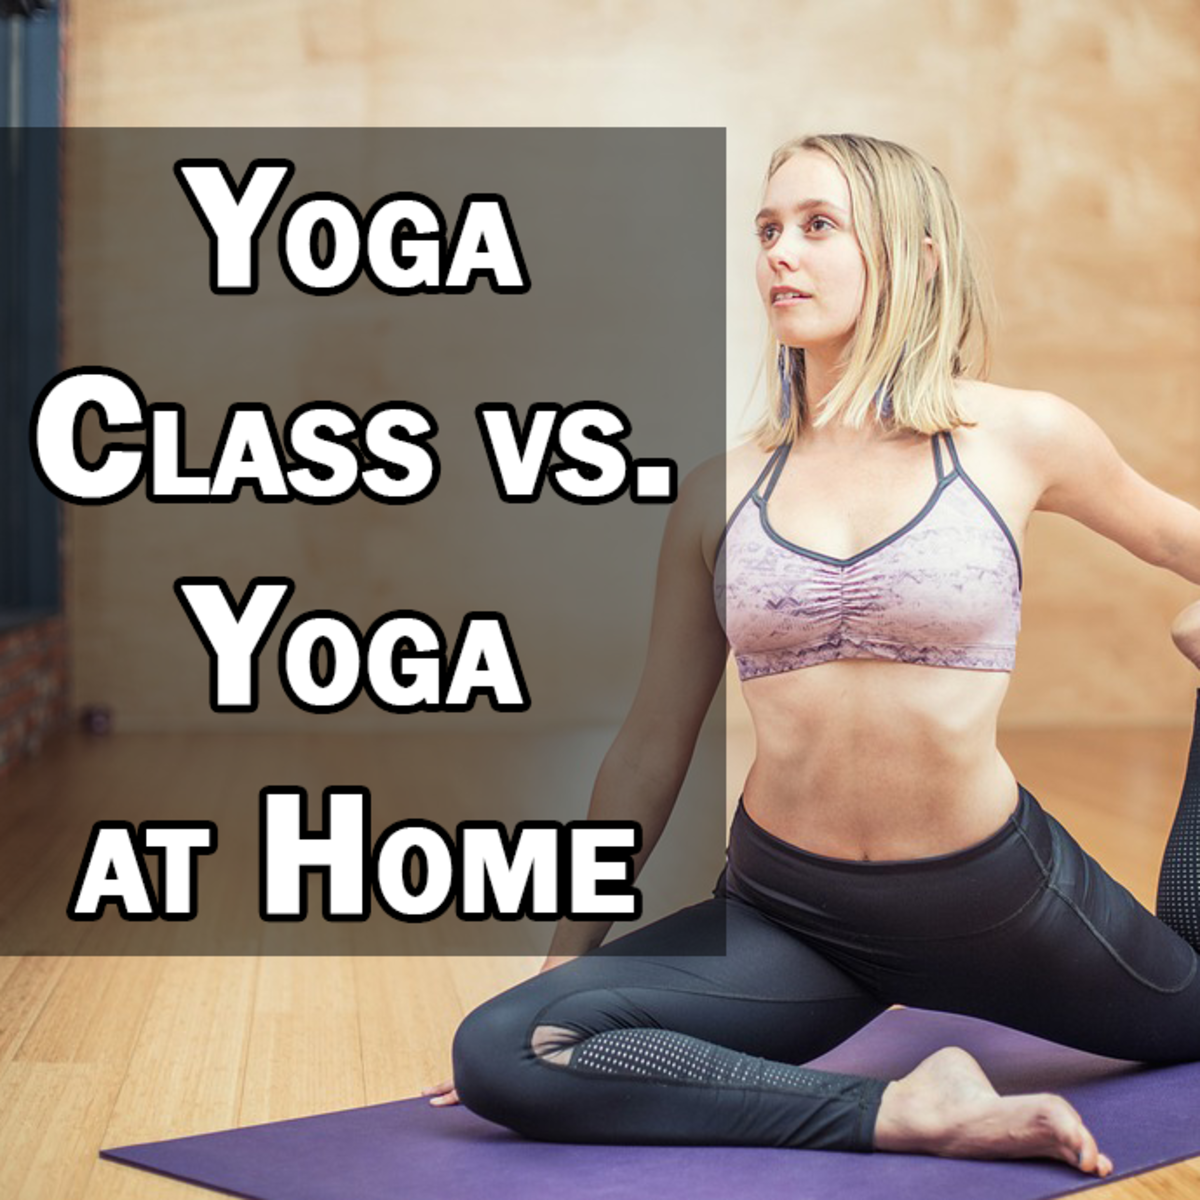 Attending Yoga Class vs Doing Yoga at Home: Which is Right for You